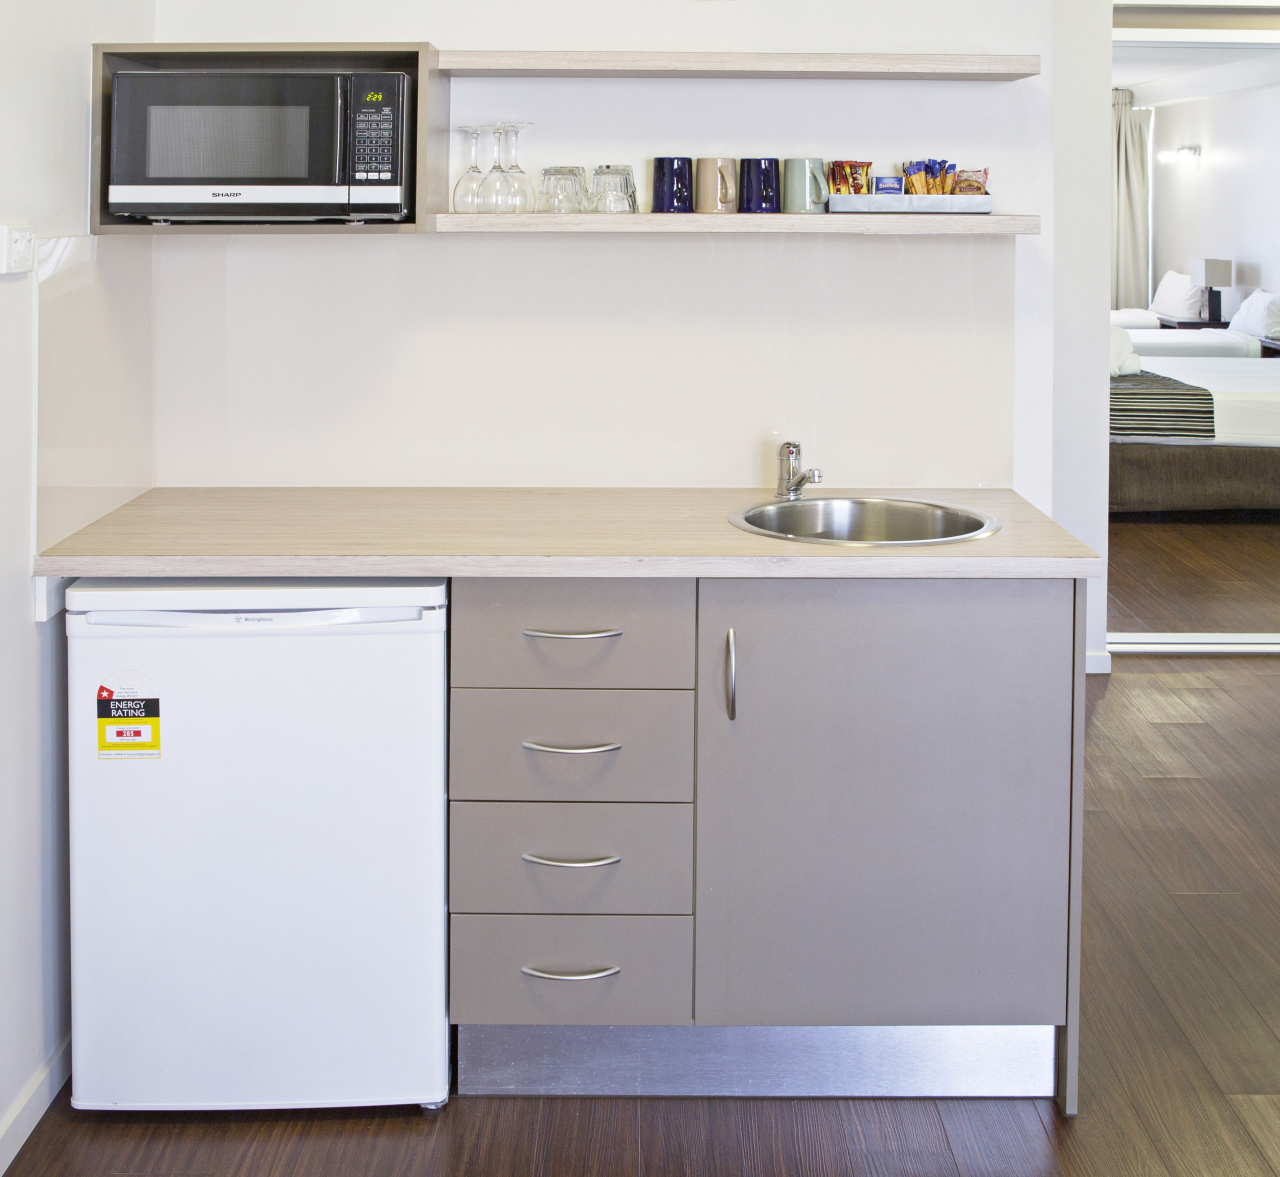 cairns accommodation esplanade holiday apartments free breakfast. Black Bedroom Furniture Sets. Home Design Ideas